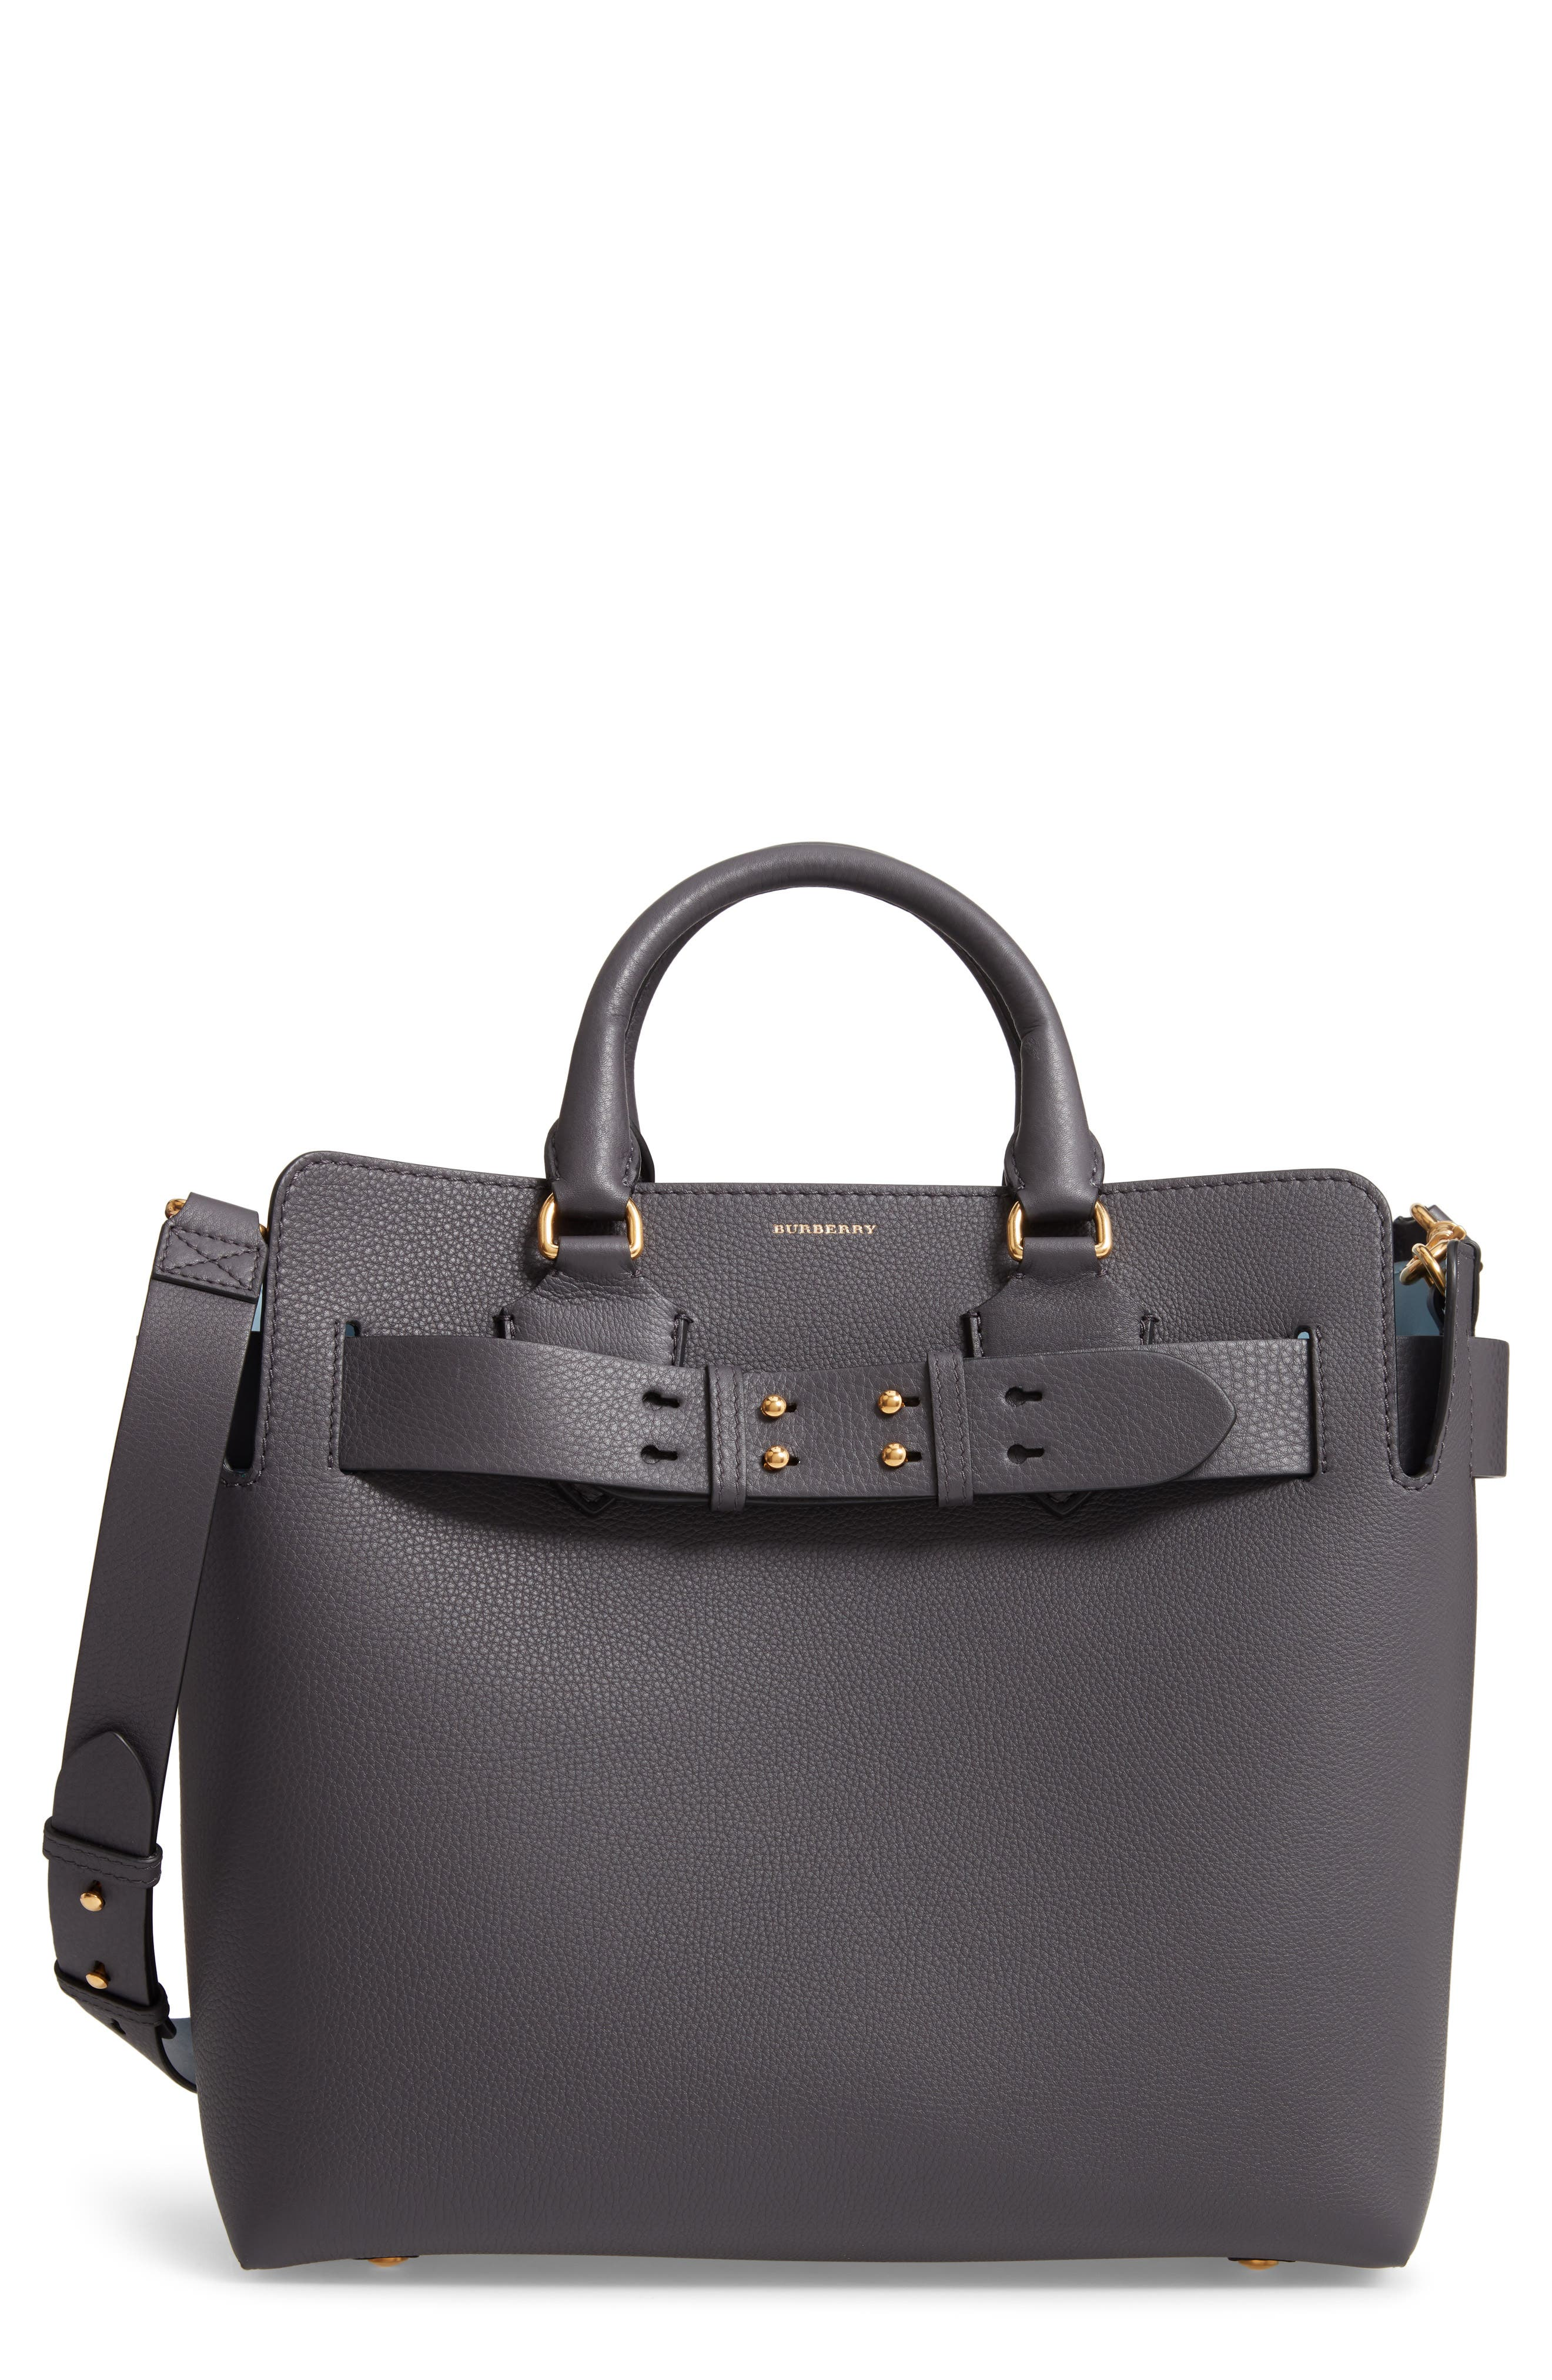 Medium Leather Belted Bag,                             Main thumbnail 1, color,                             CHARCOAL GREY